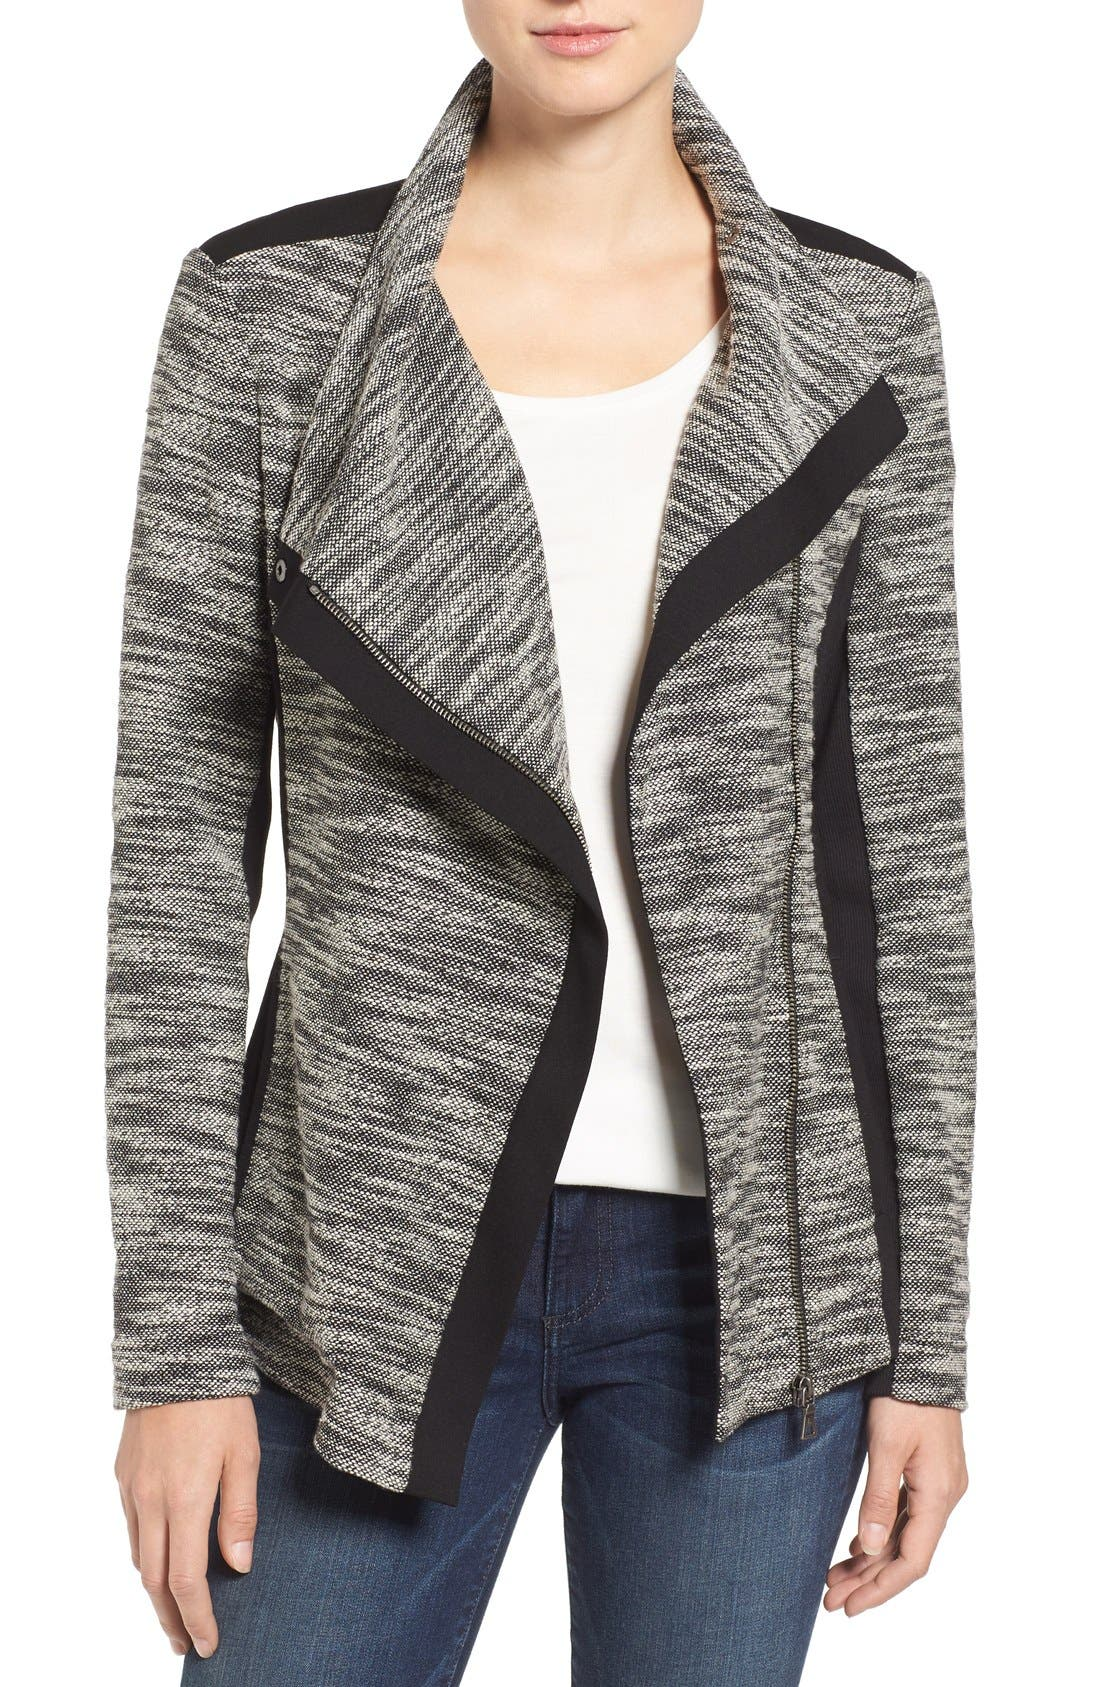 Main Image - Two by Vince Camuto Asymmetrical Mixed Media Jacket (Regular & Petite)